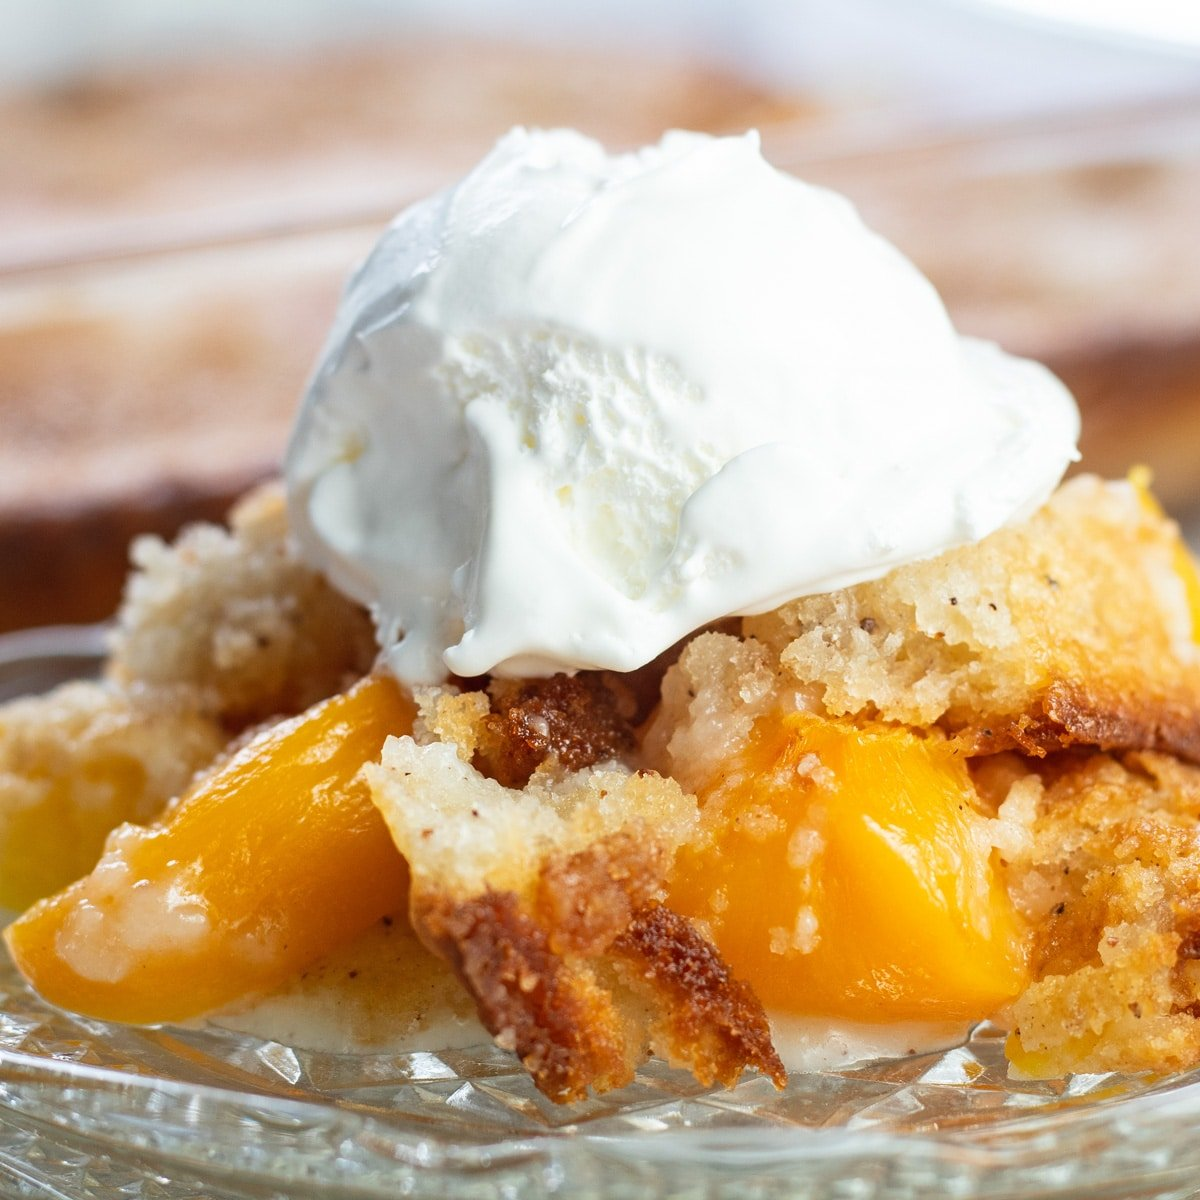 Bisquick peach cobbler served on glass plate with baking dish in background.